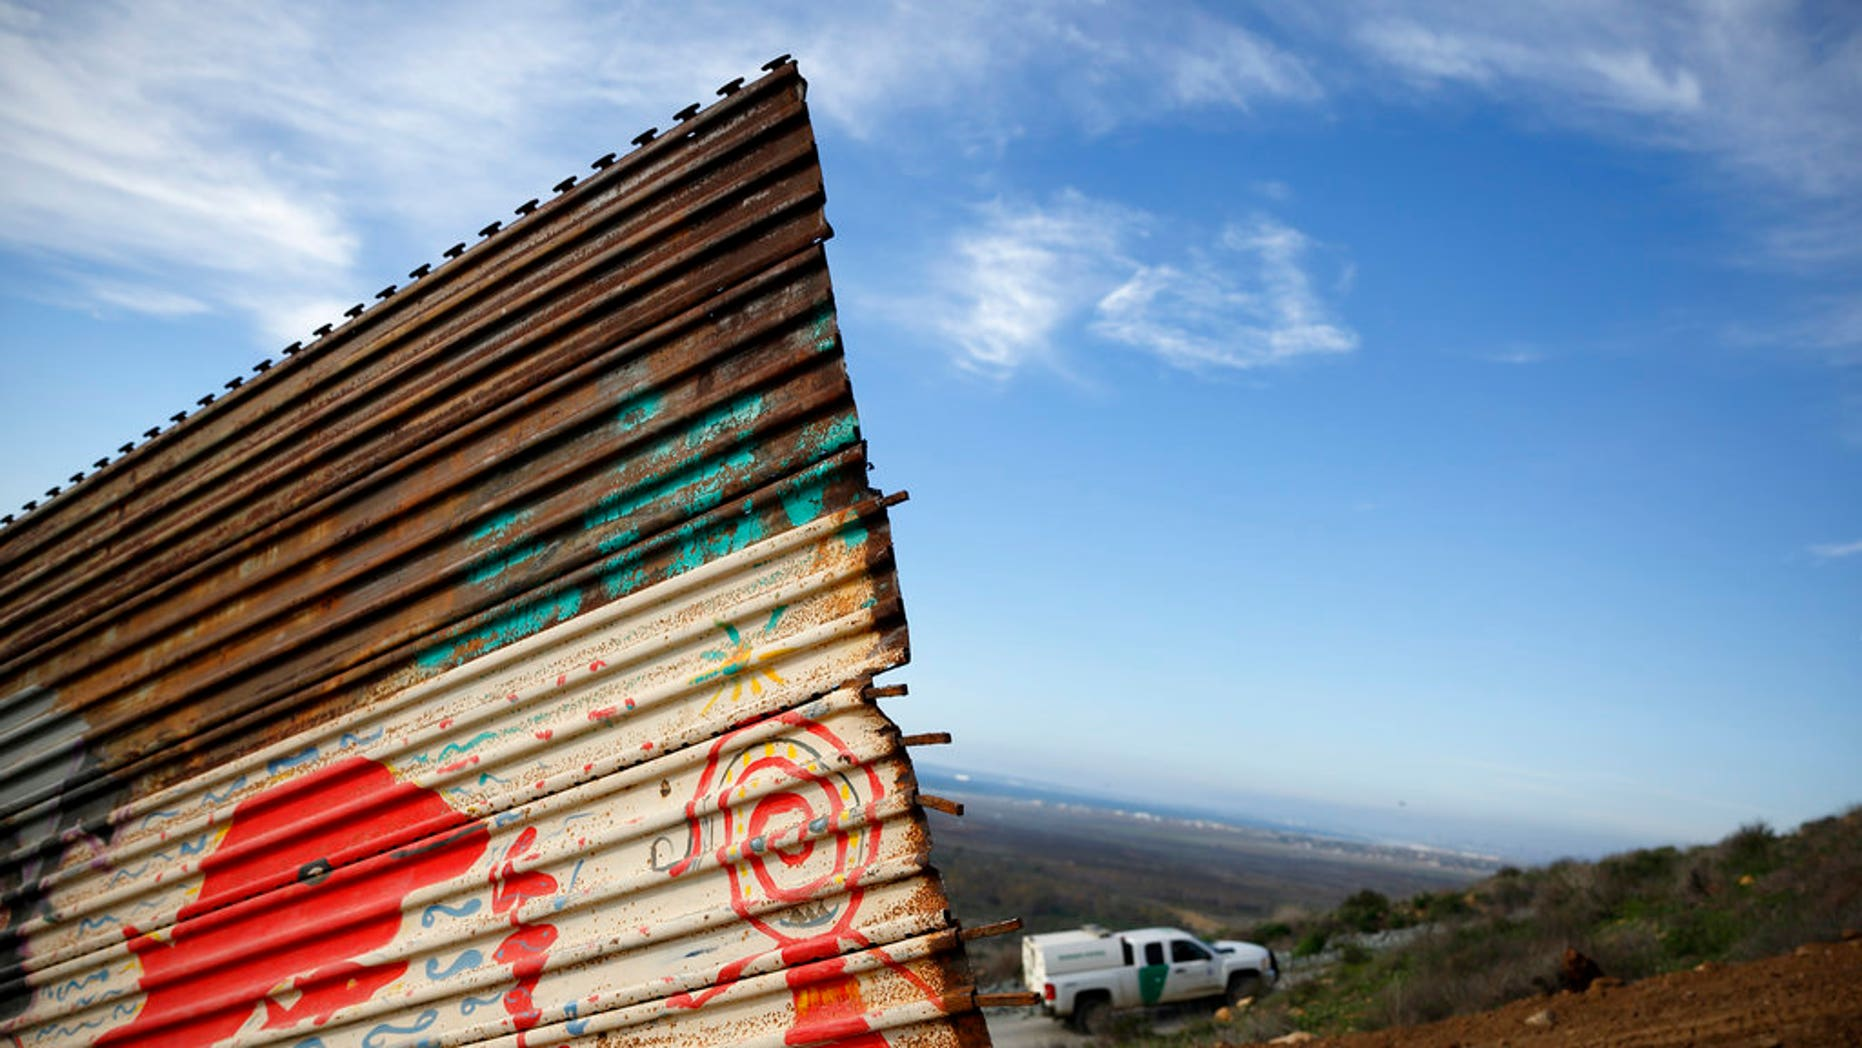 """A U.S. Border Patrol vehicle passes behind a section of border wall Wednesday, Jan. 9, 2019, seen from Tijuana, Mexico. U.S. President Donald Trump walked out of his negotiating meeting with congressional leaders Wednesday — """"I said bye-bye,"""" he tweeted— as efforts to end the 19-day partial government shutdown fell into deeper disarray over his demand for billions of dollars to build a wall on the U.S.-Mexico border. (AP Photo/Gregory Bull)"""